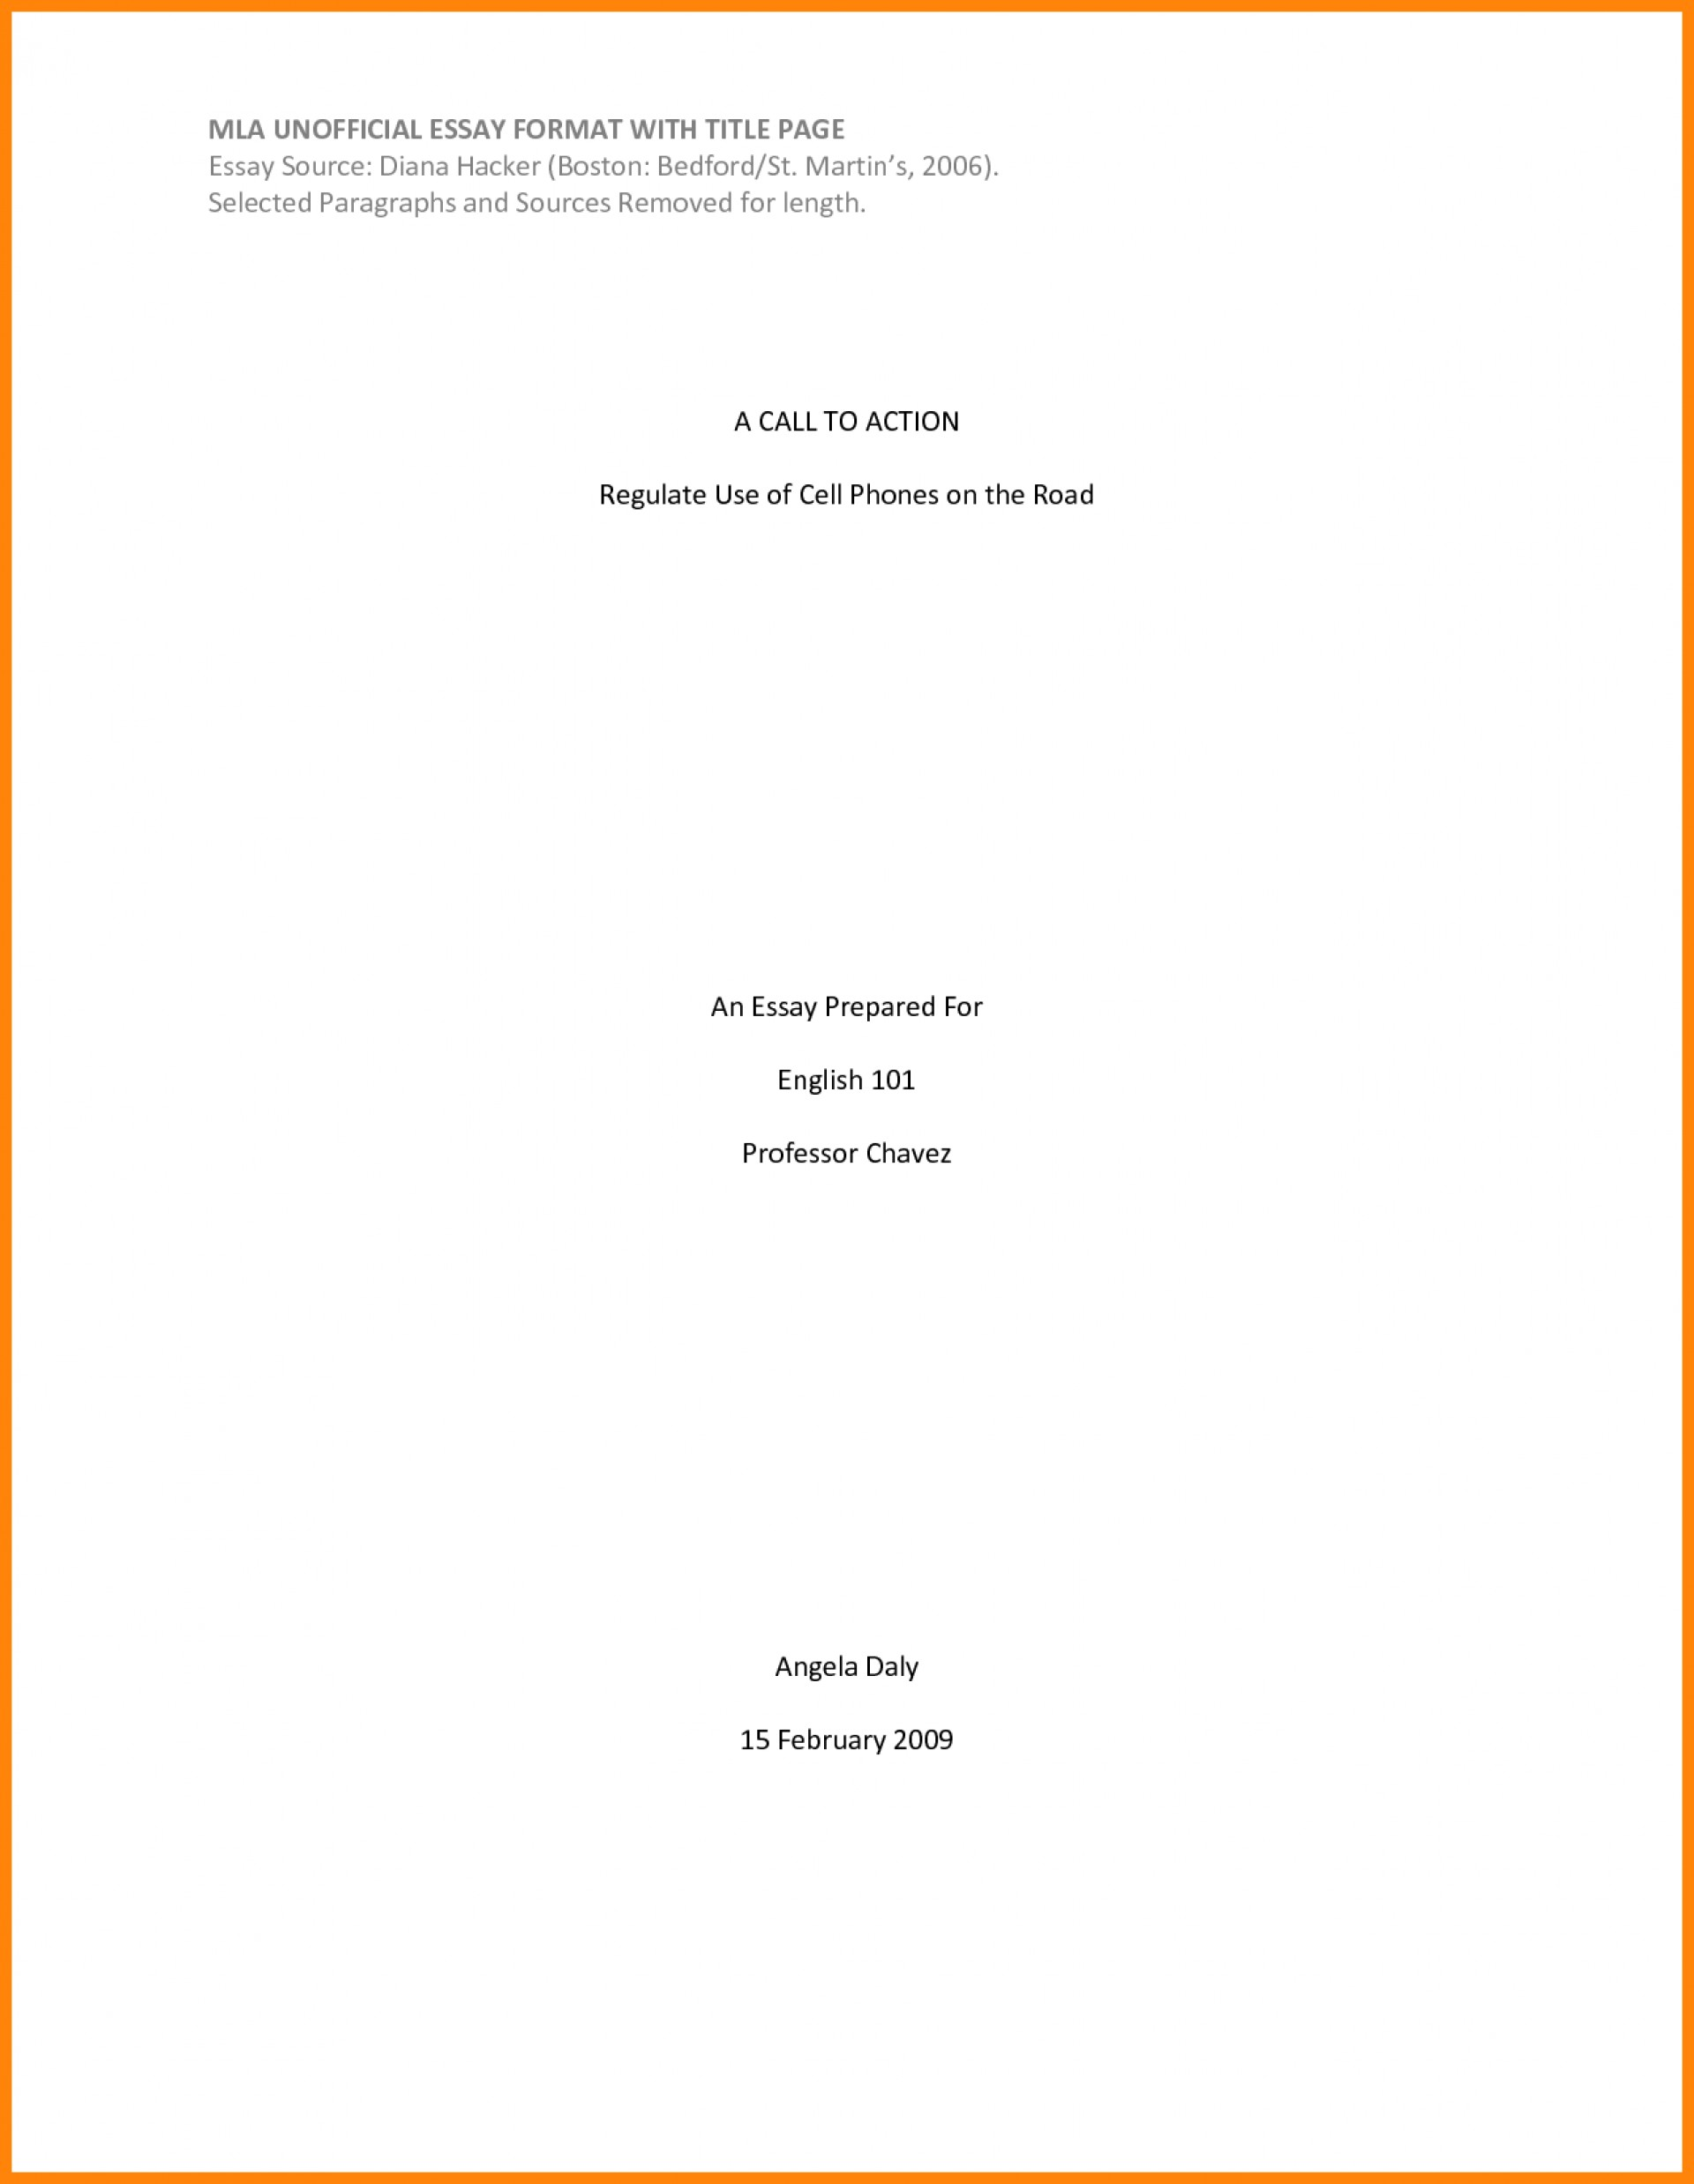 002 Research Paper Cover Page Example For Essay 8 How To Make Marvelous A Mla 1920